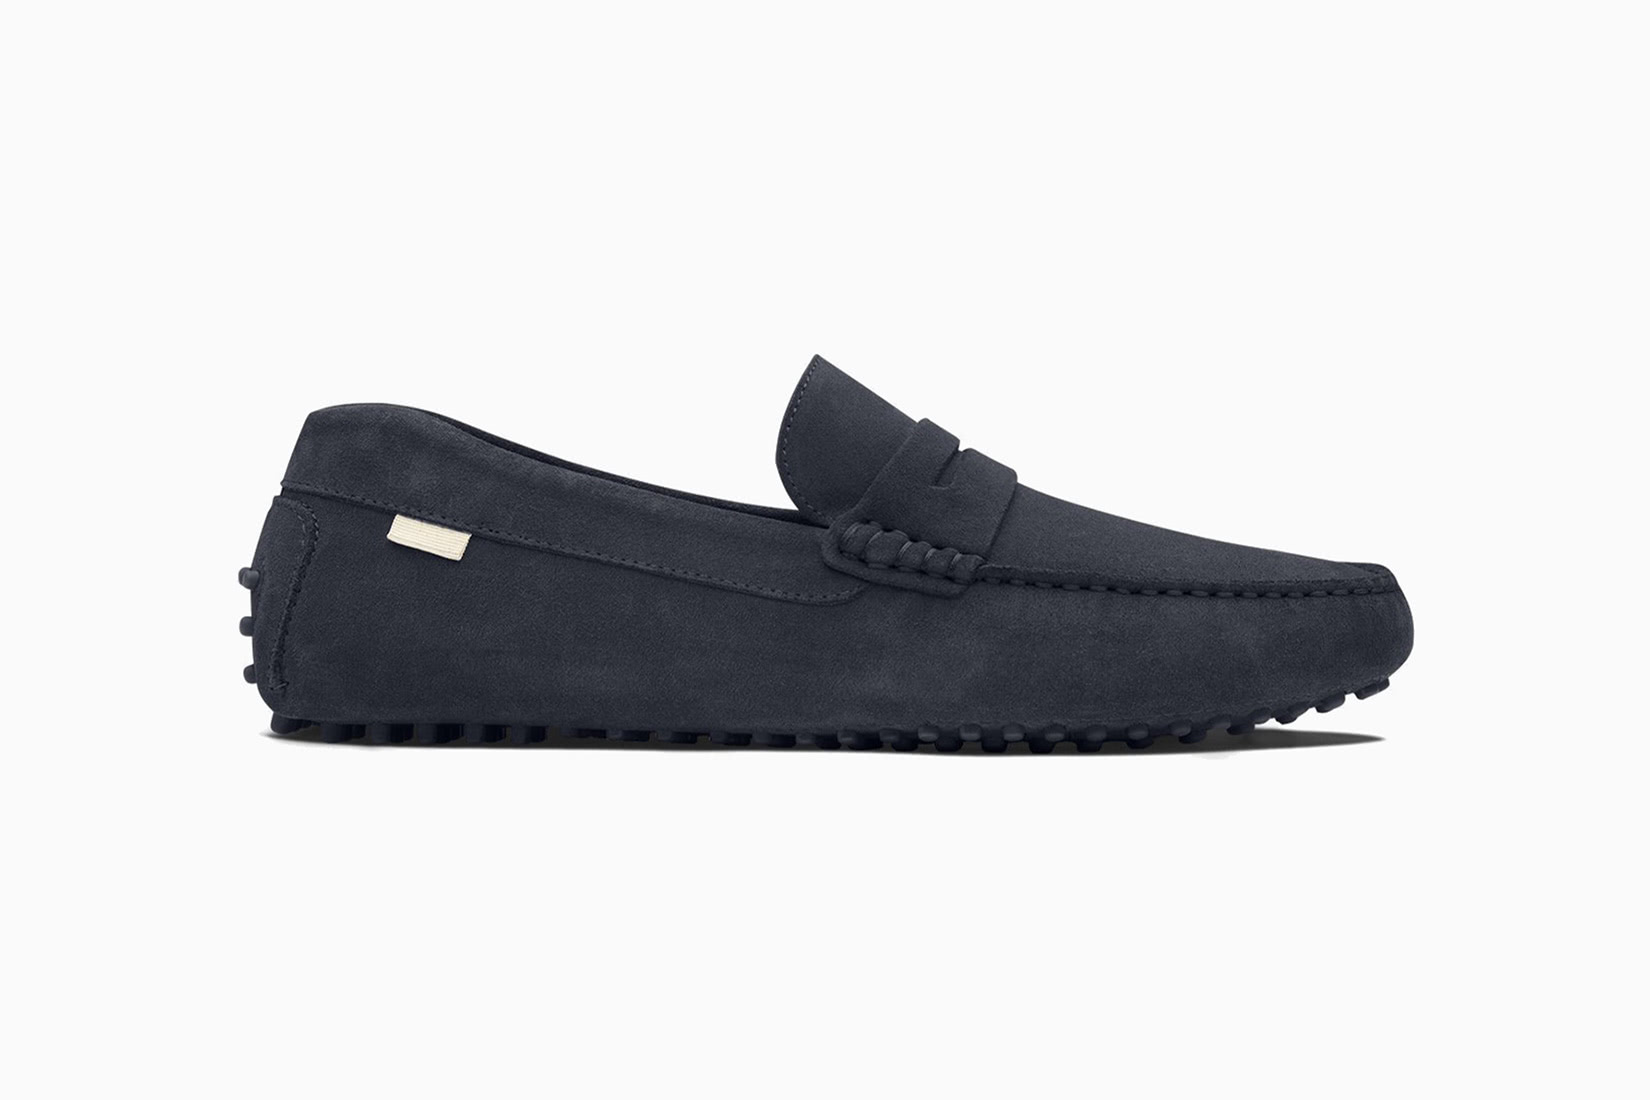 best men loafers oliver cabell drivers - Luxe Digital